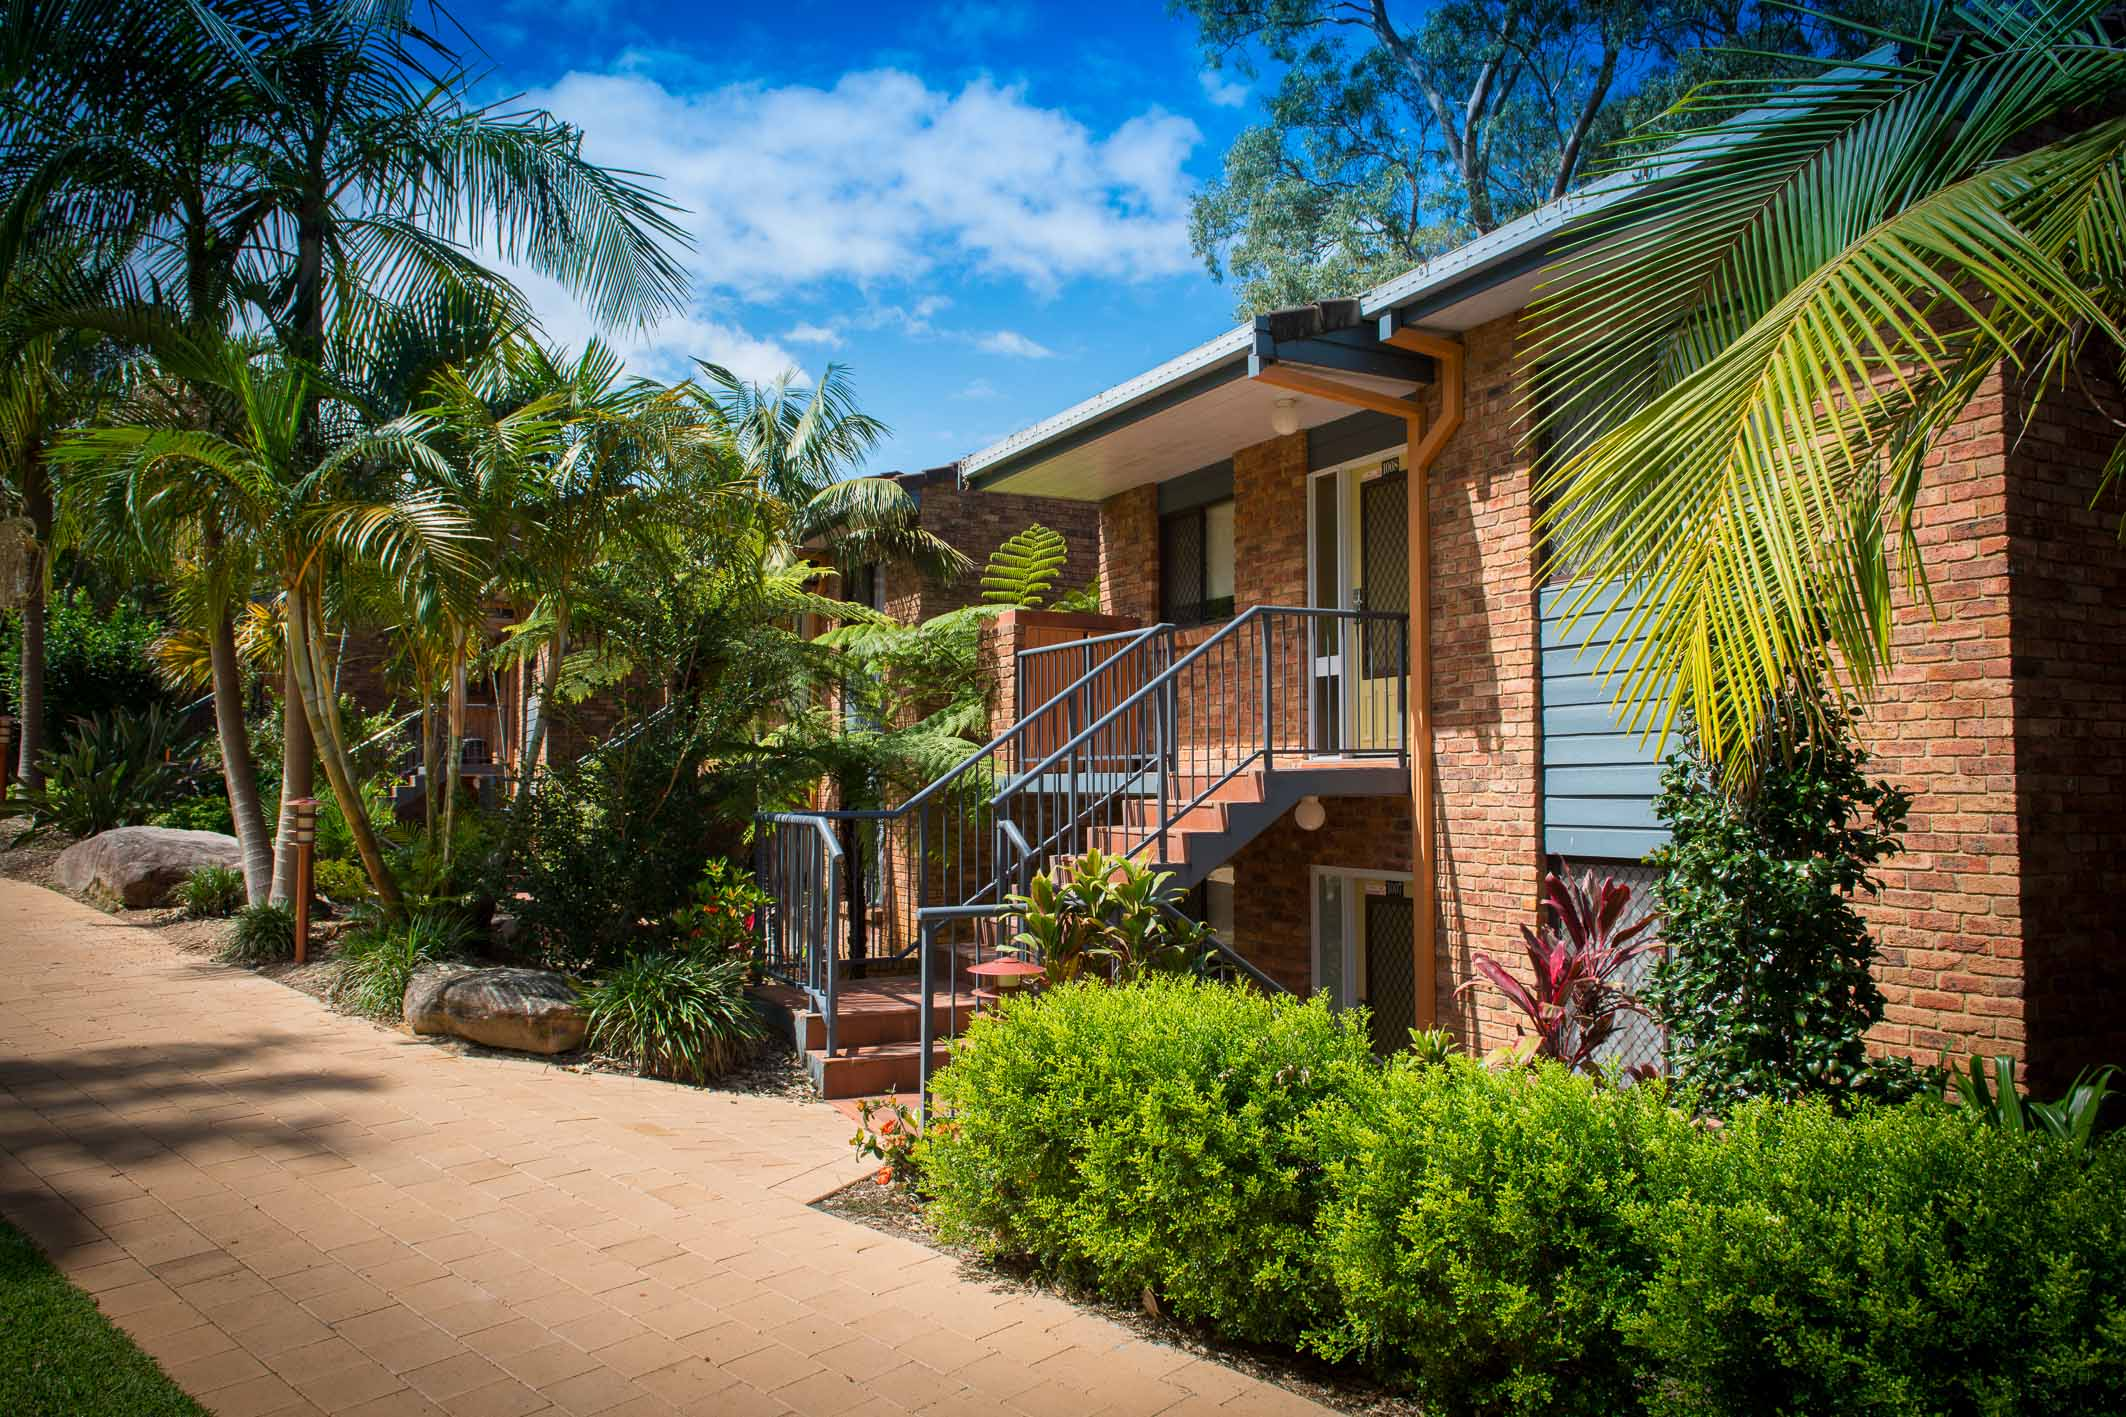 Boambee Bay Resort - Hotel Accommodation